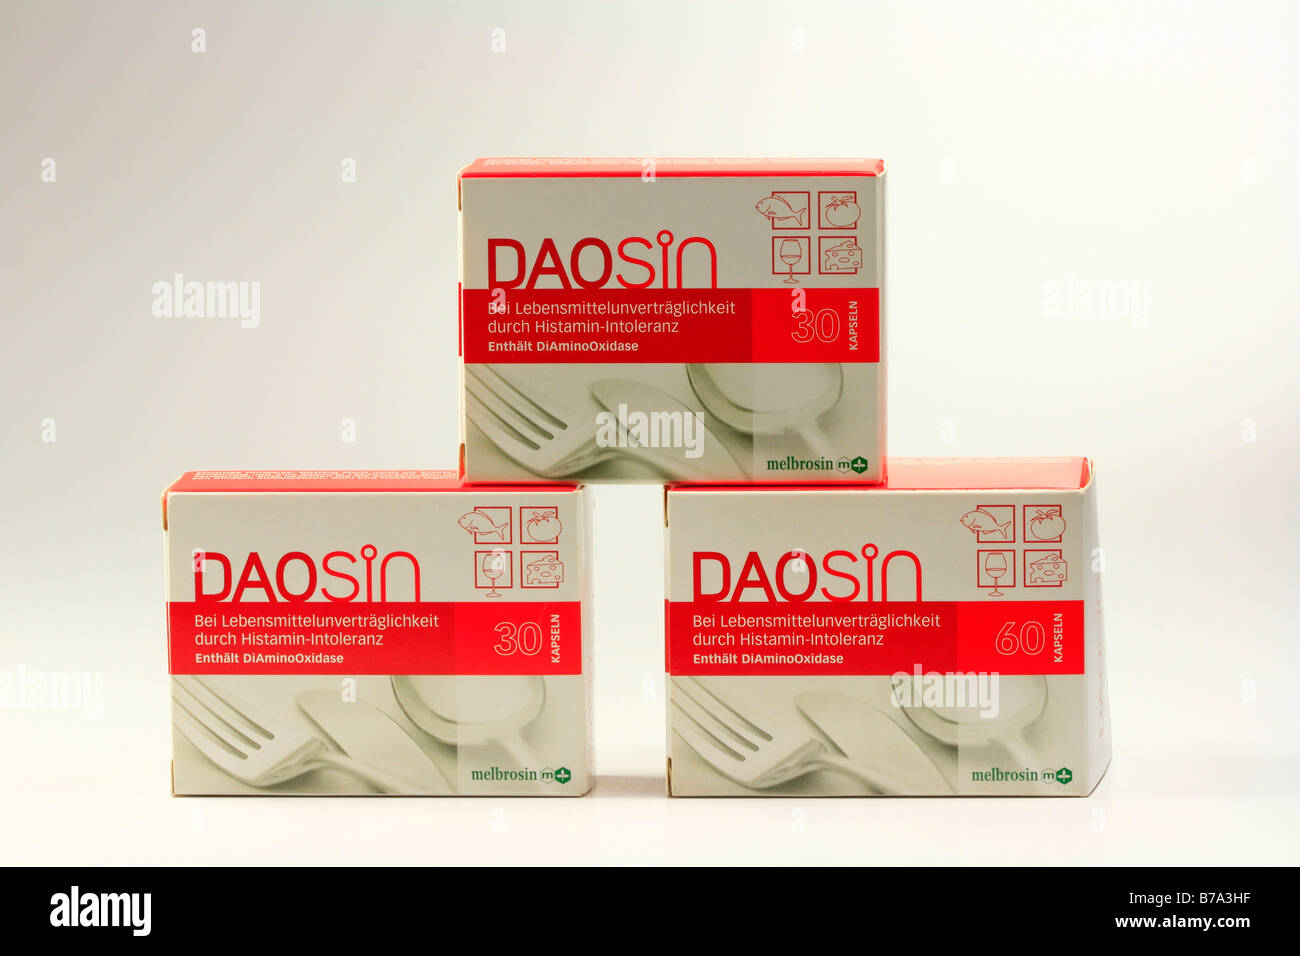 Daosin, dietary supplement, medicinal product for use with histamine intolerance, contains the active substance - Stock Image